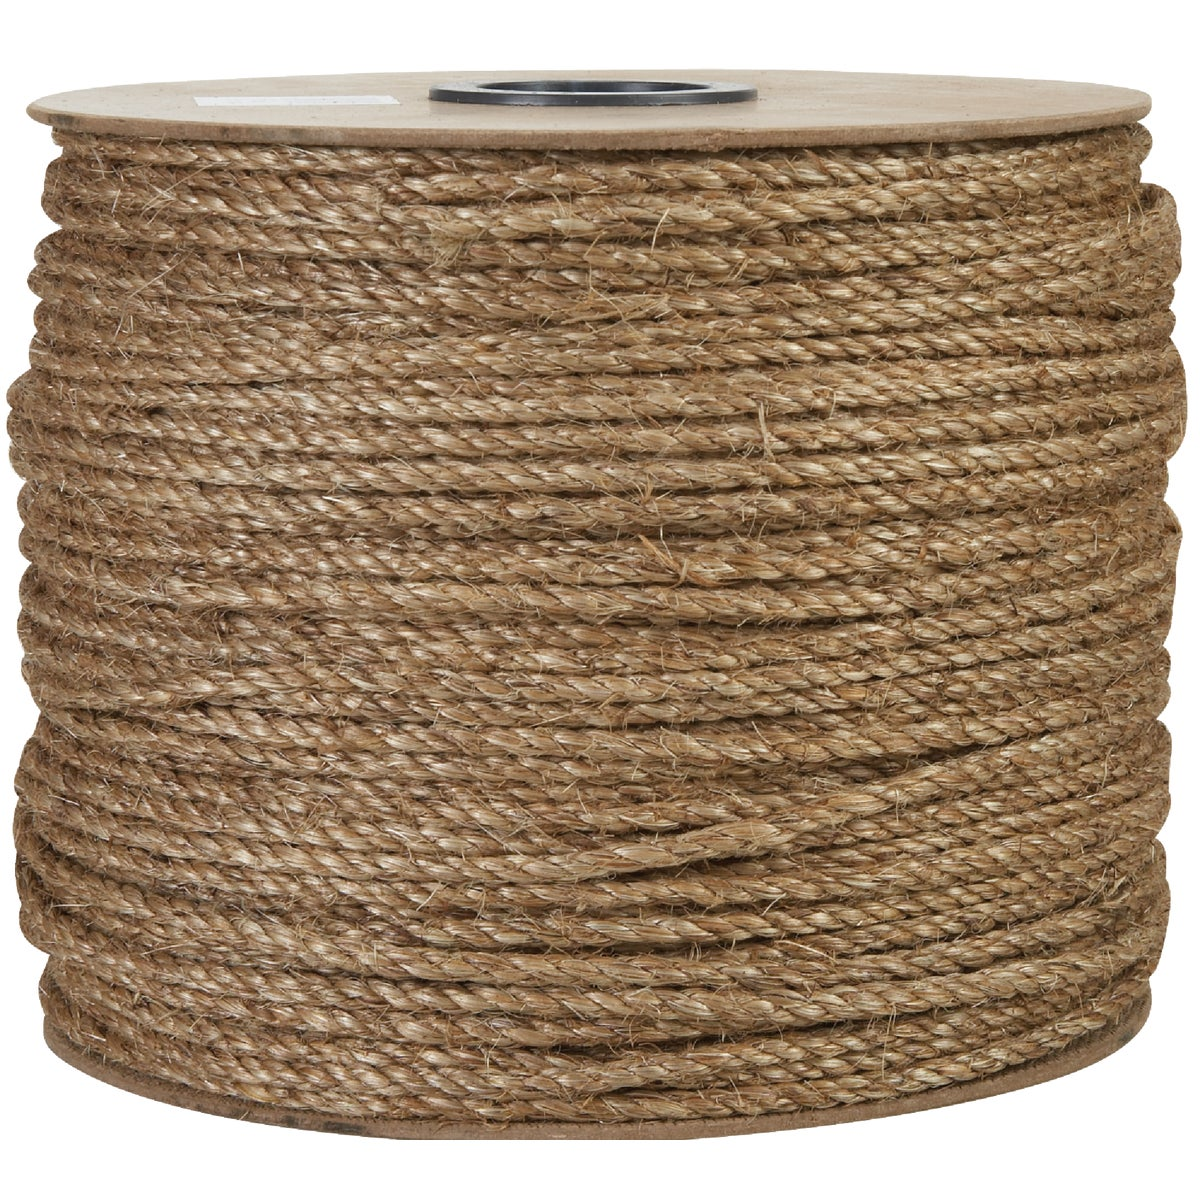 "1/4""X800' MANILA ROPE - 708470 by Do it Best"